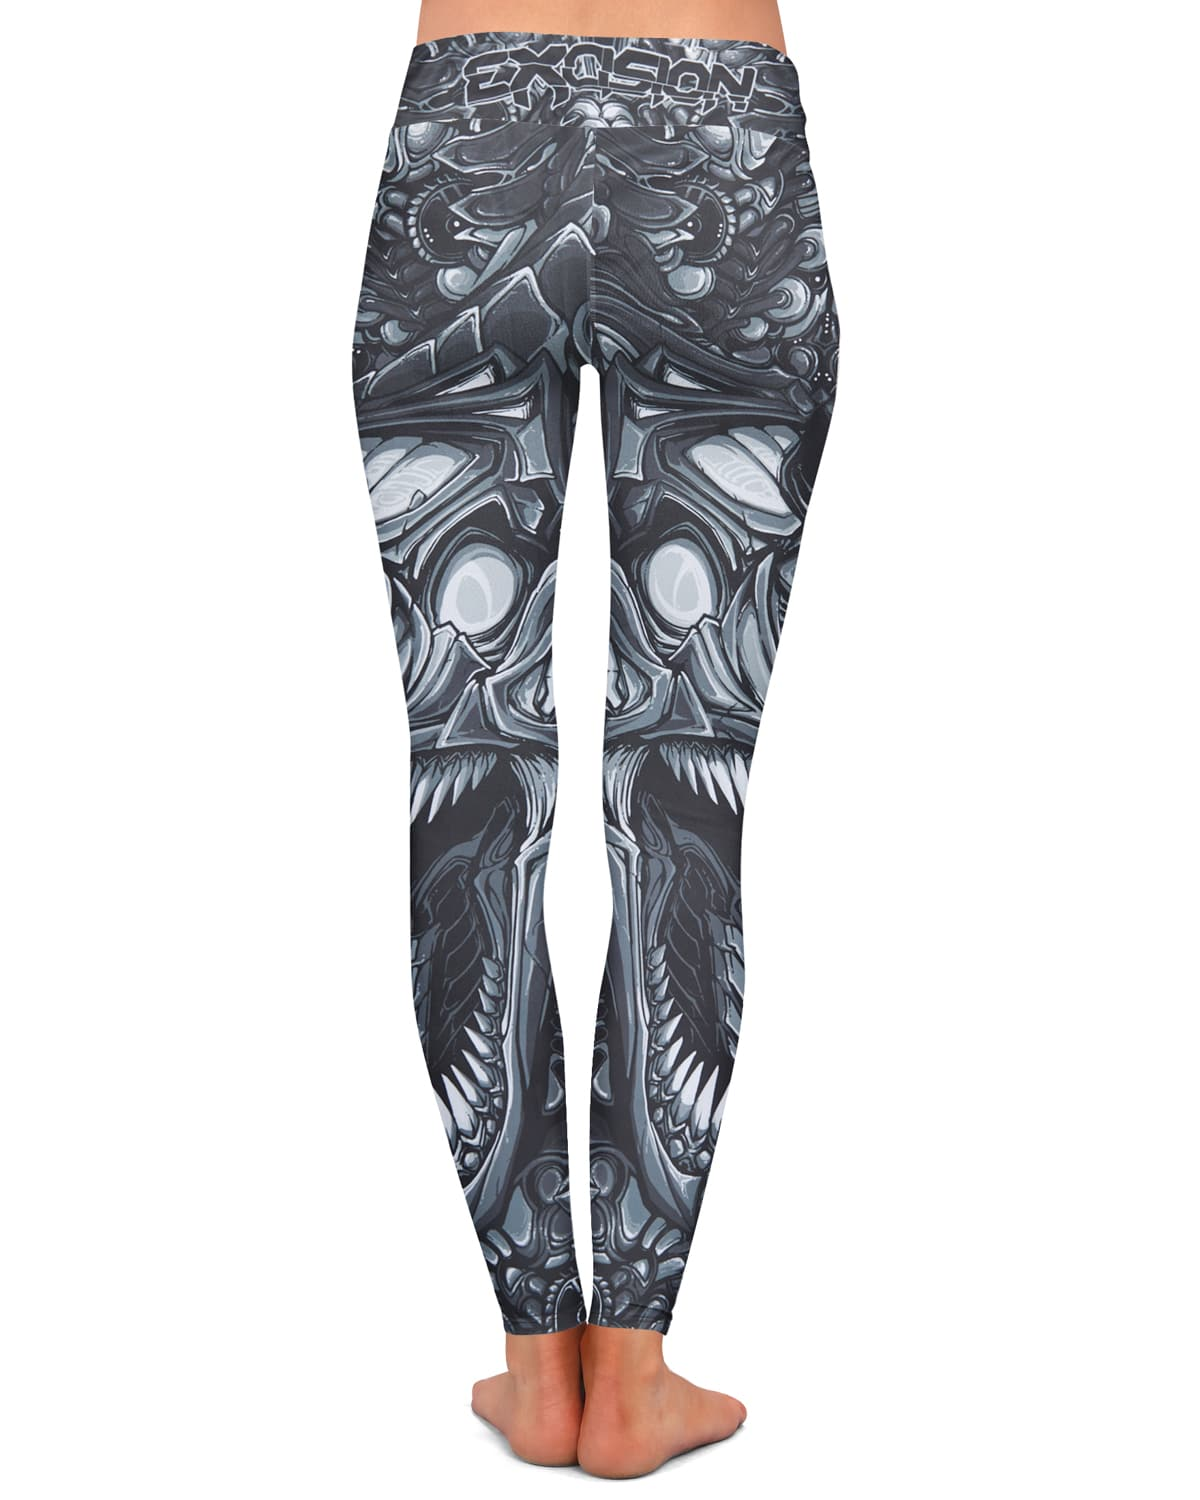 Excision 'Venom' Leggings - Moondust